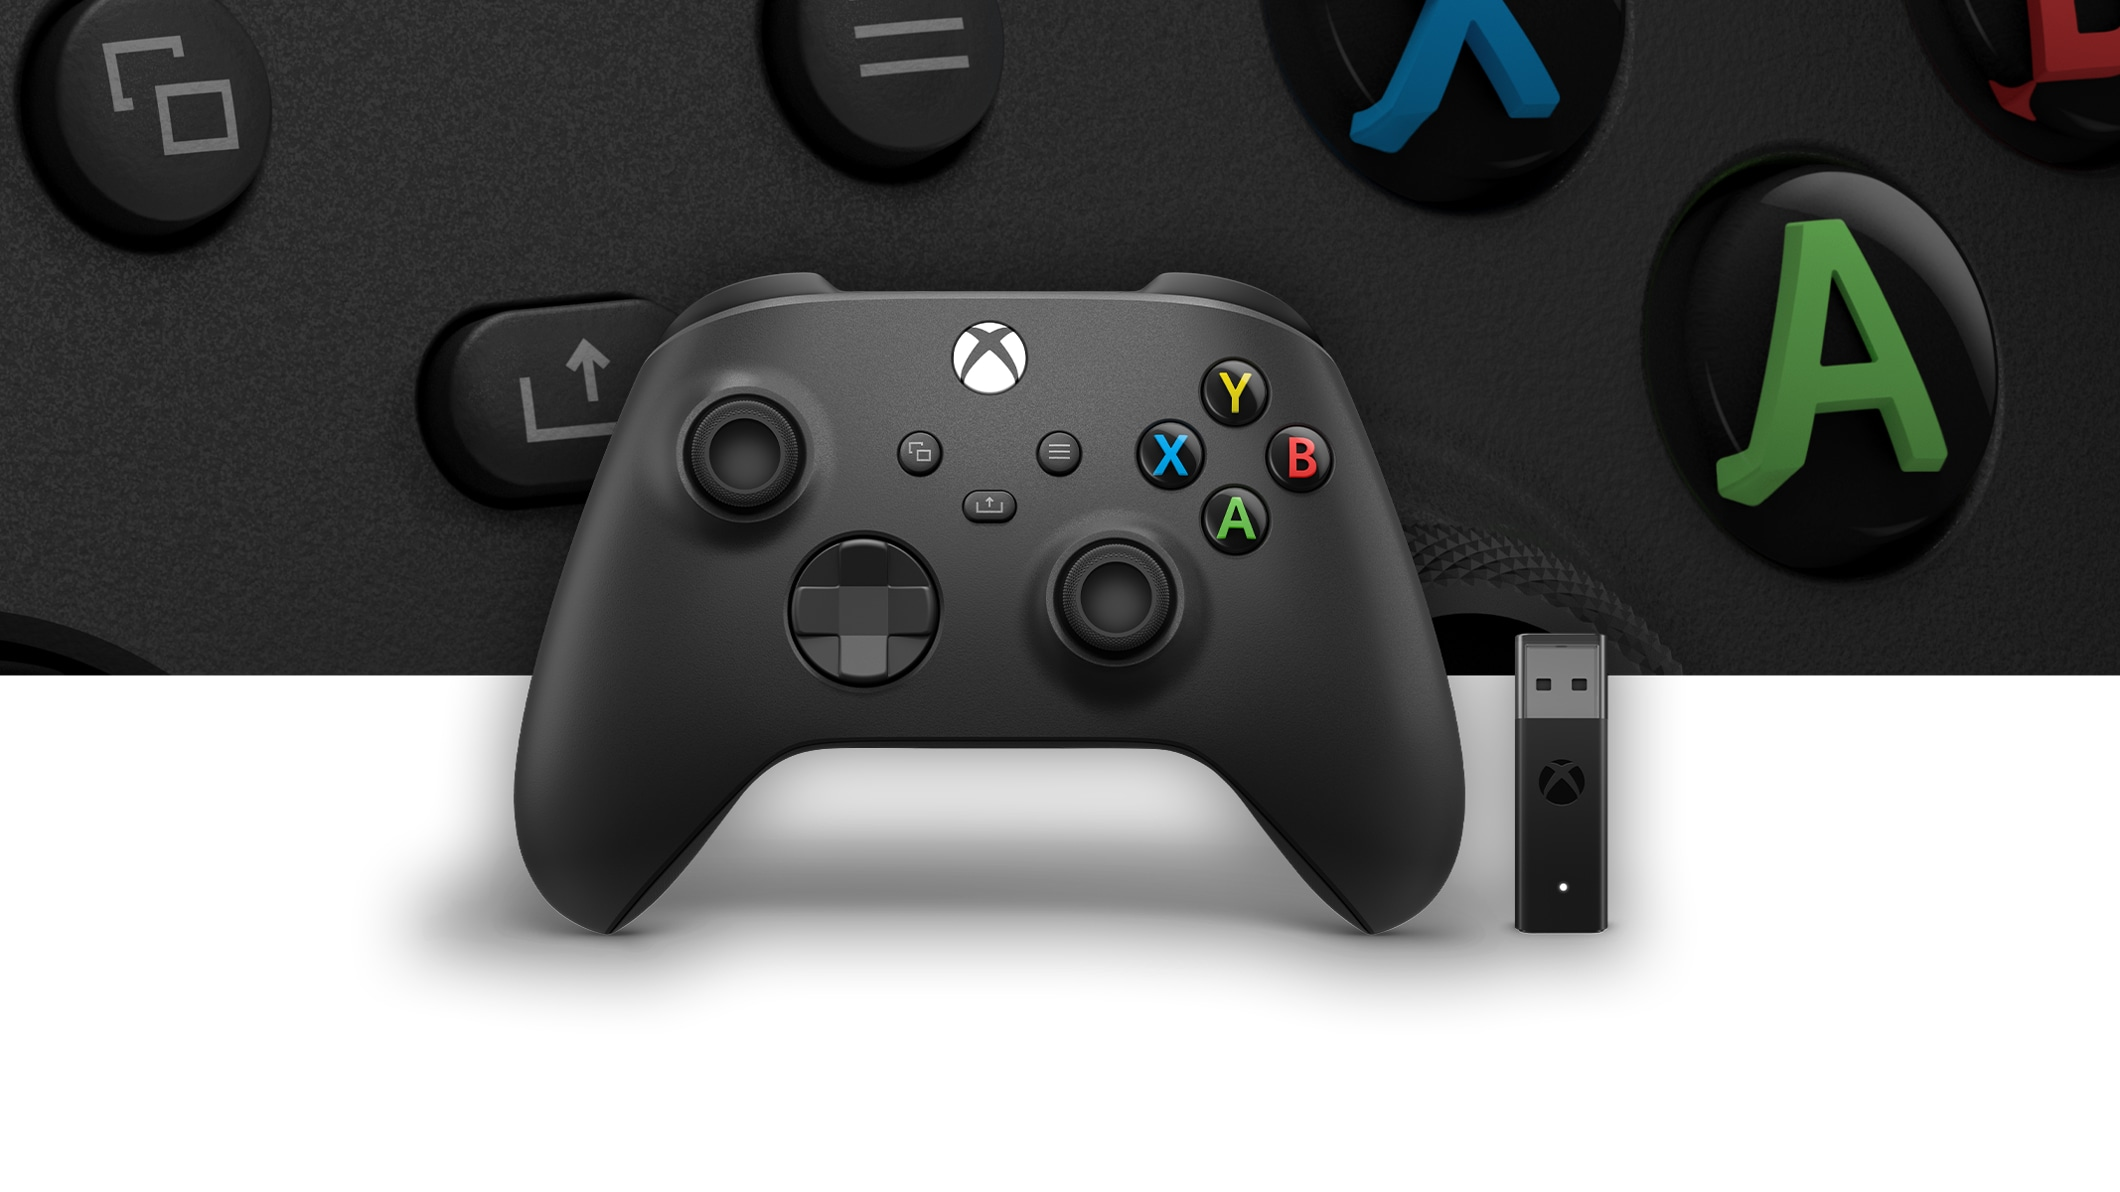 Xbox Wireless Controller + Wireless Adaptor for Windows 10 with a close up of the controller in the background